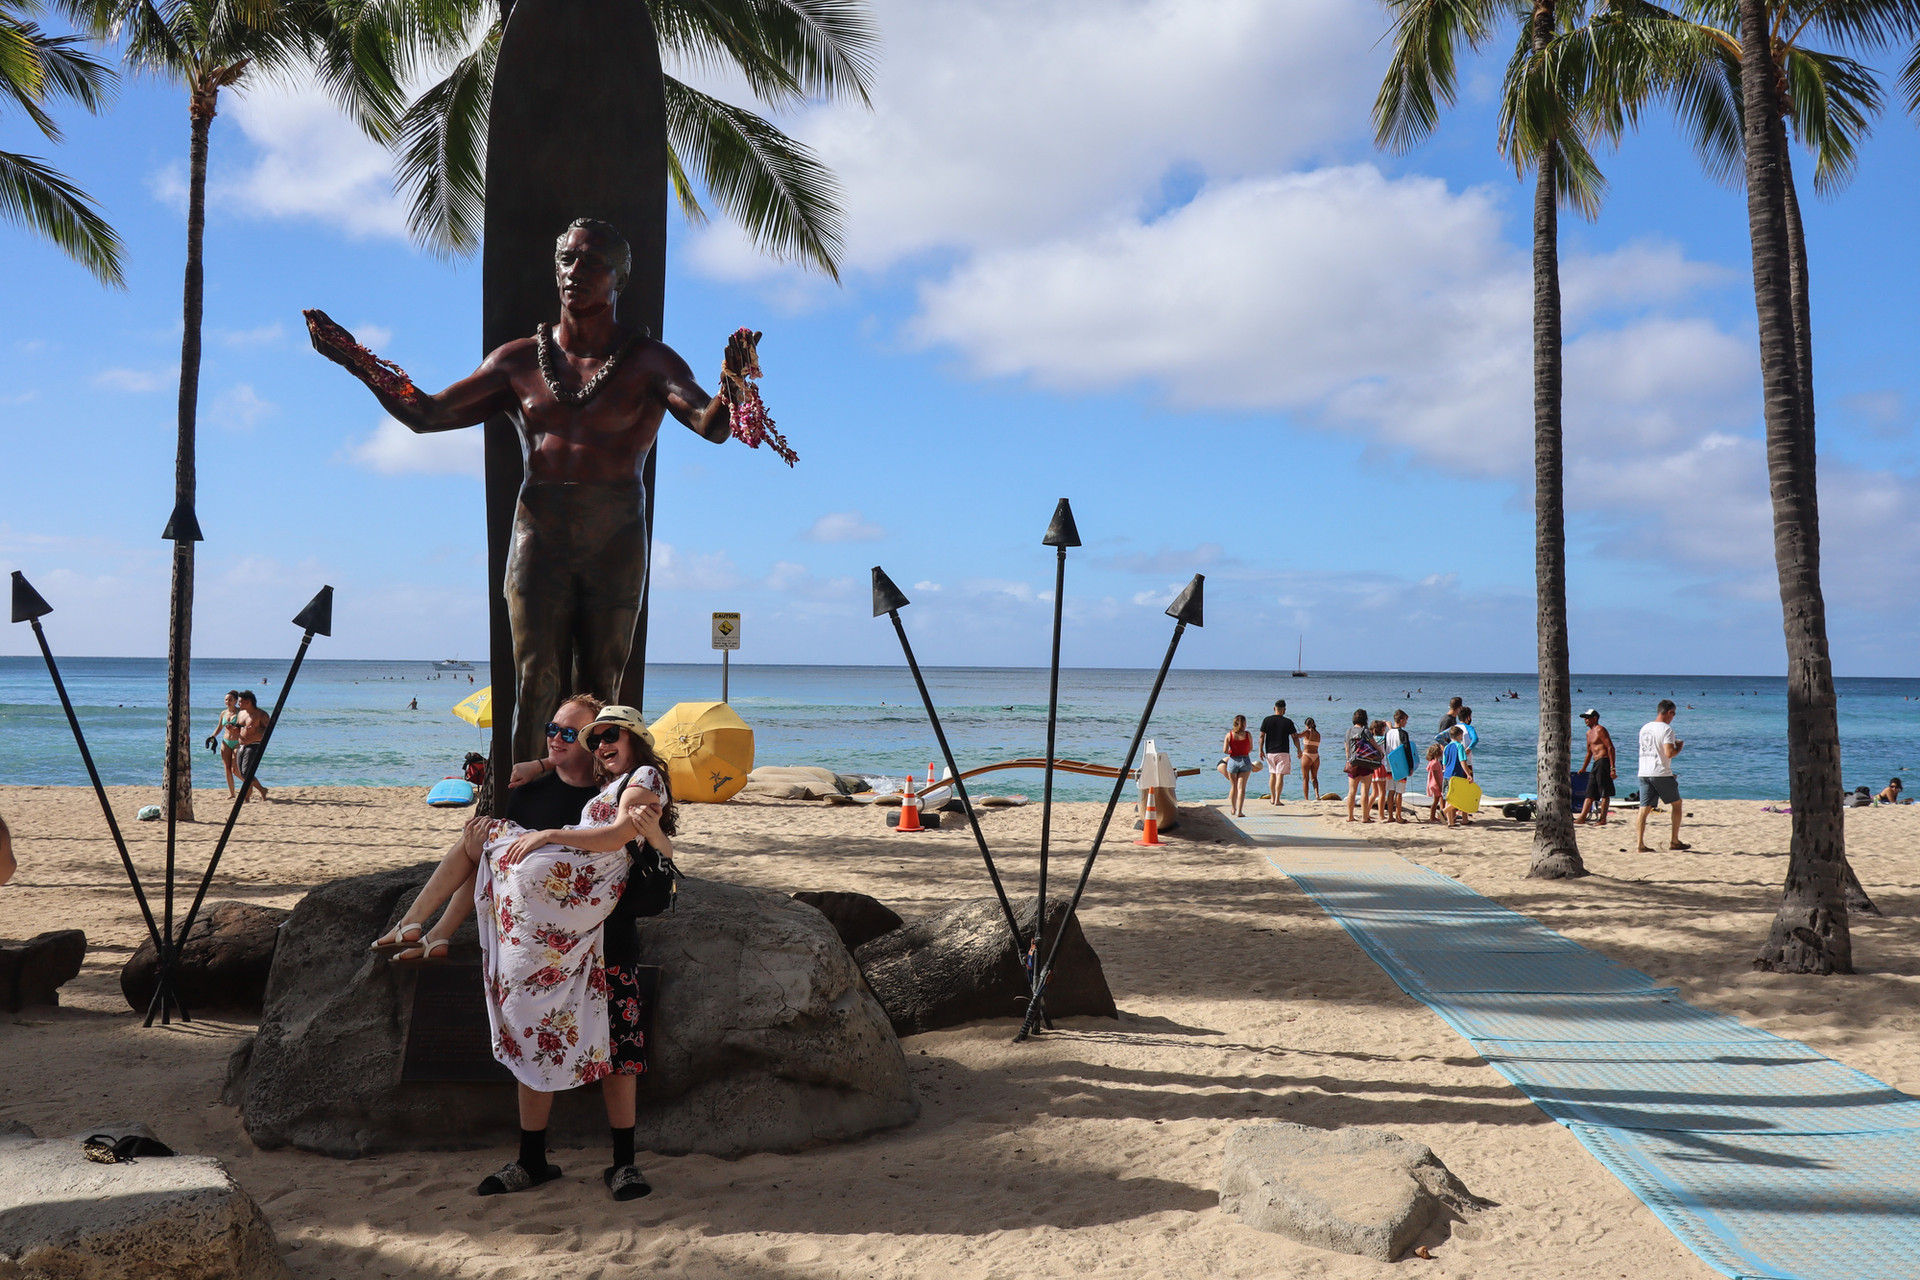 Tourists enjoy their time infront of Duke statue at Kuhio Beach in Waikiki on November 2020. From October 15, 2020 Hawaii has opened its gate to the incoming tourists through pre-travel testing program that allow travelers to come to the Hawaiian islands without 14-day quarantining.